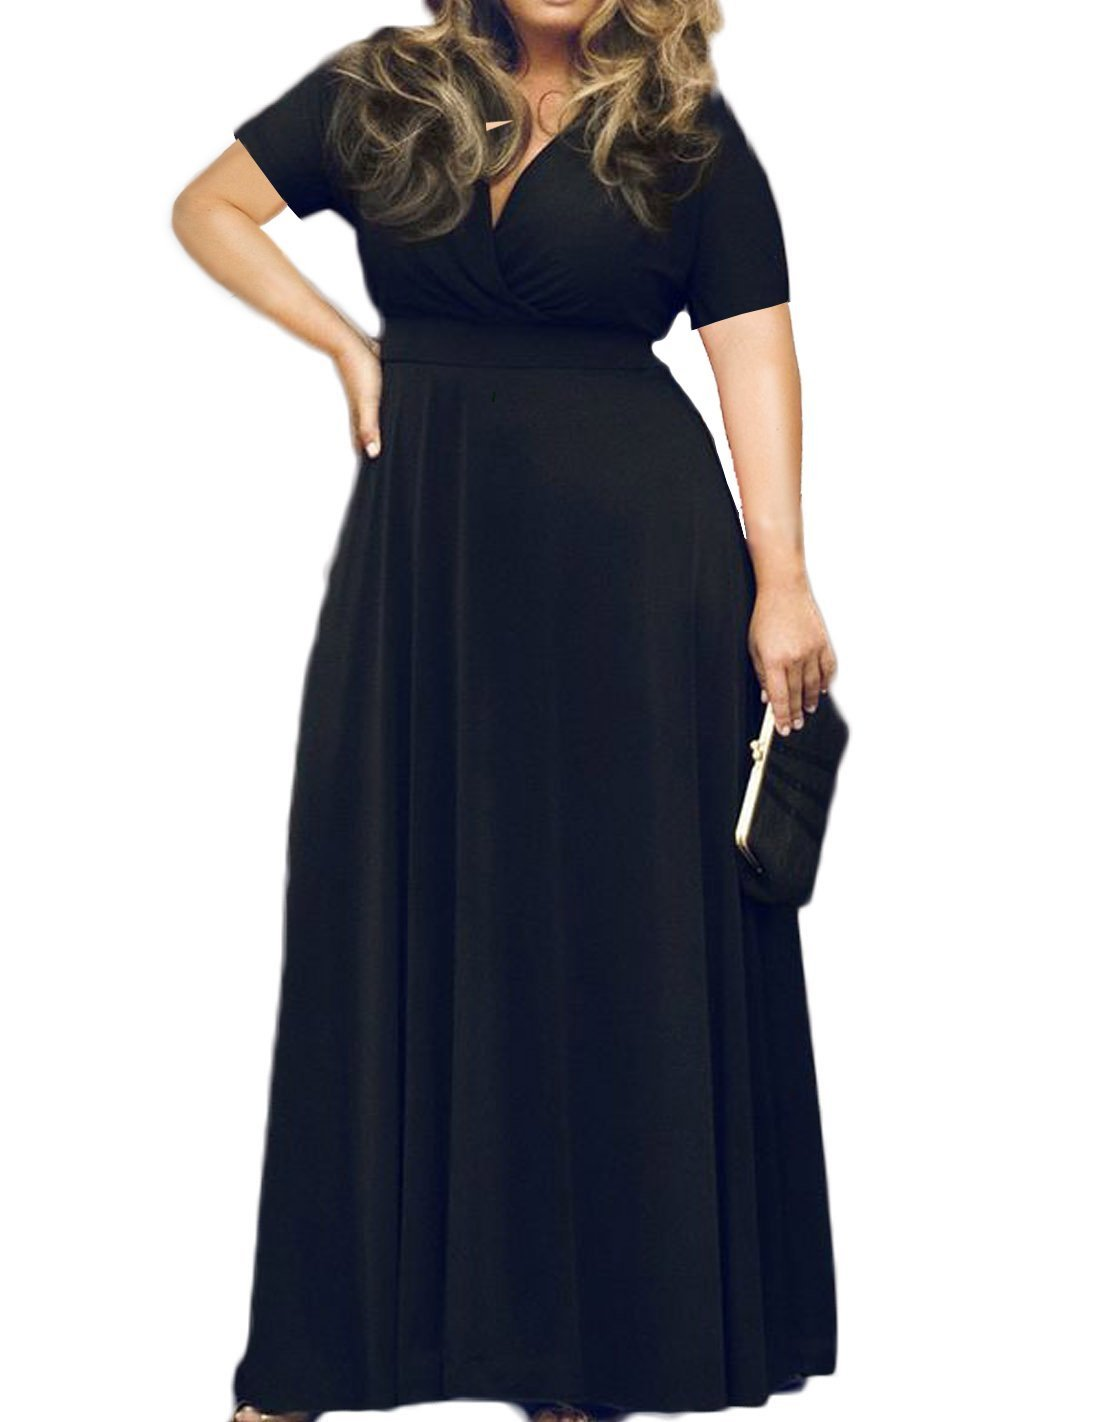 AM CLOTHES Womens Plus Size V-Neck Short Sleeve Evening Party Maxi Dress 2XL Black